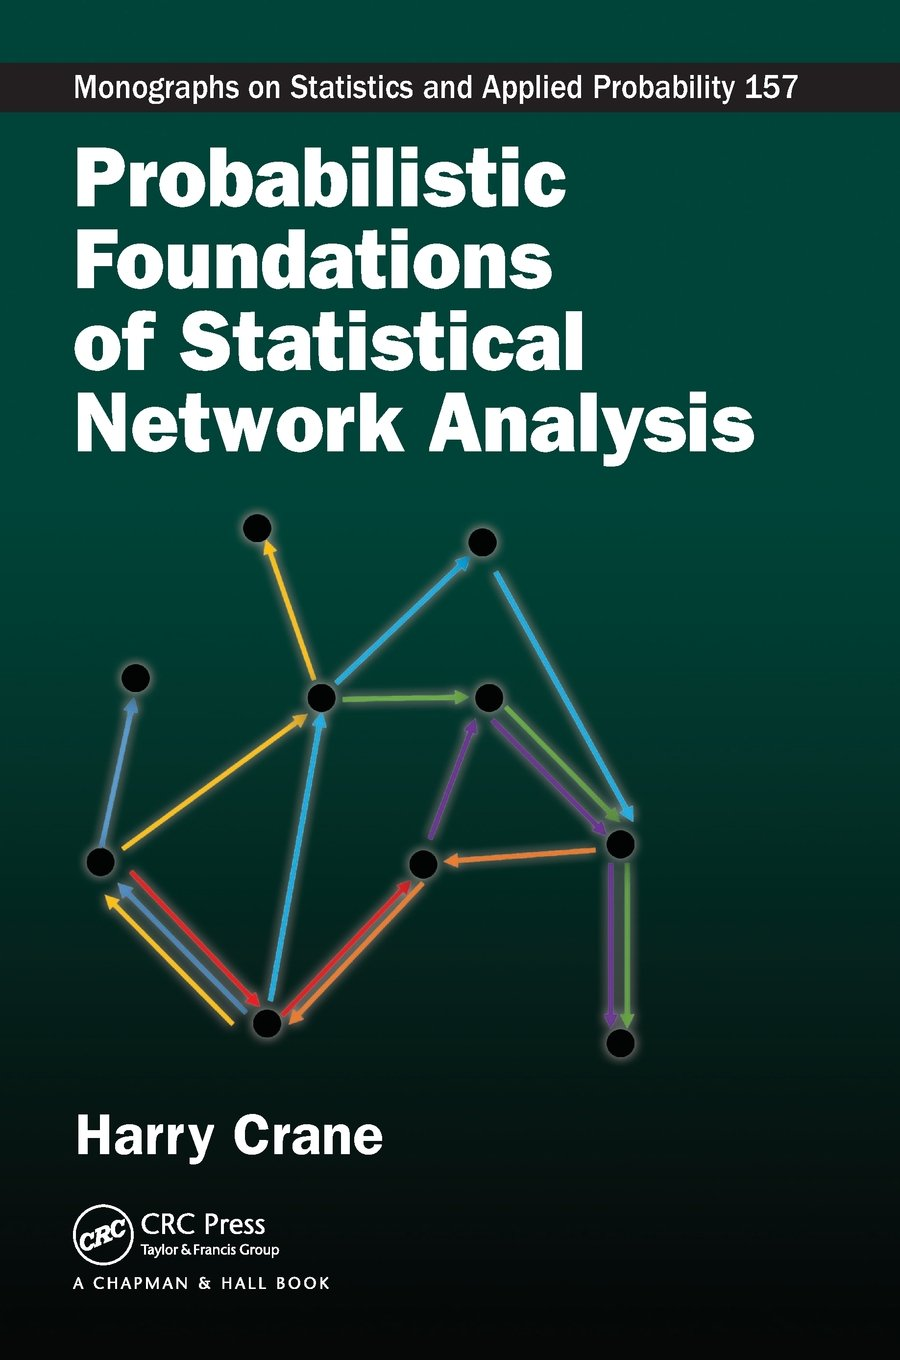 Probabilistic Foundations Of Statistical Network Analysis  Monographs On Statistics And Applied Probability Band 157